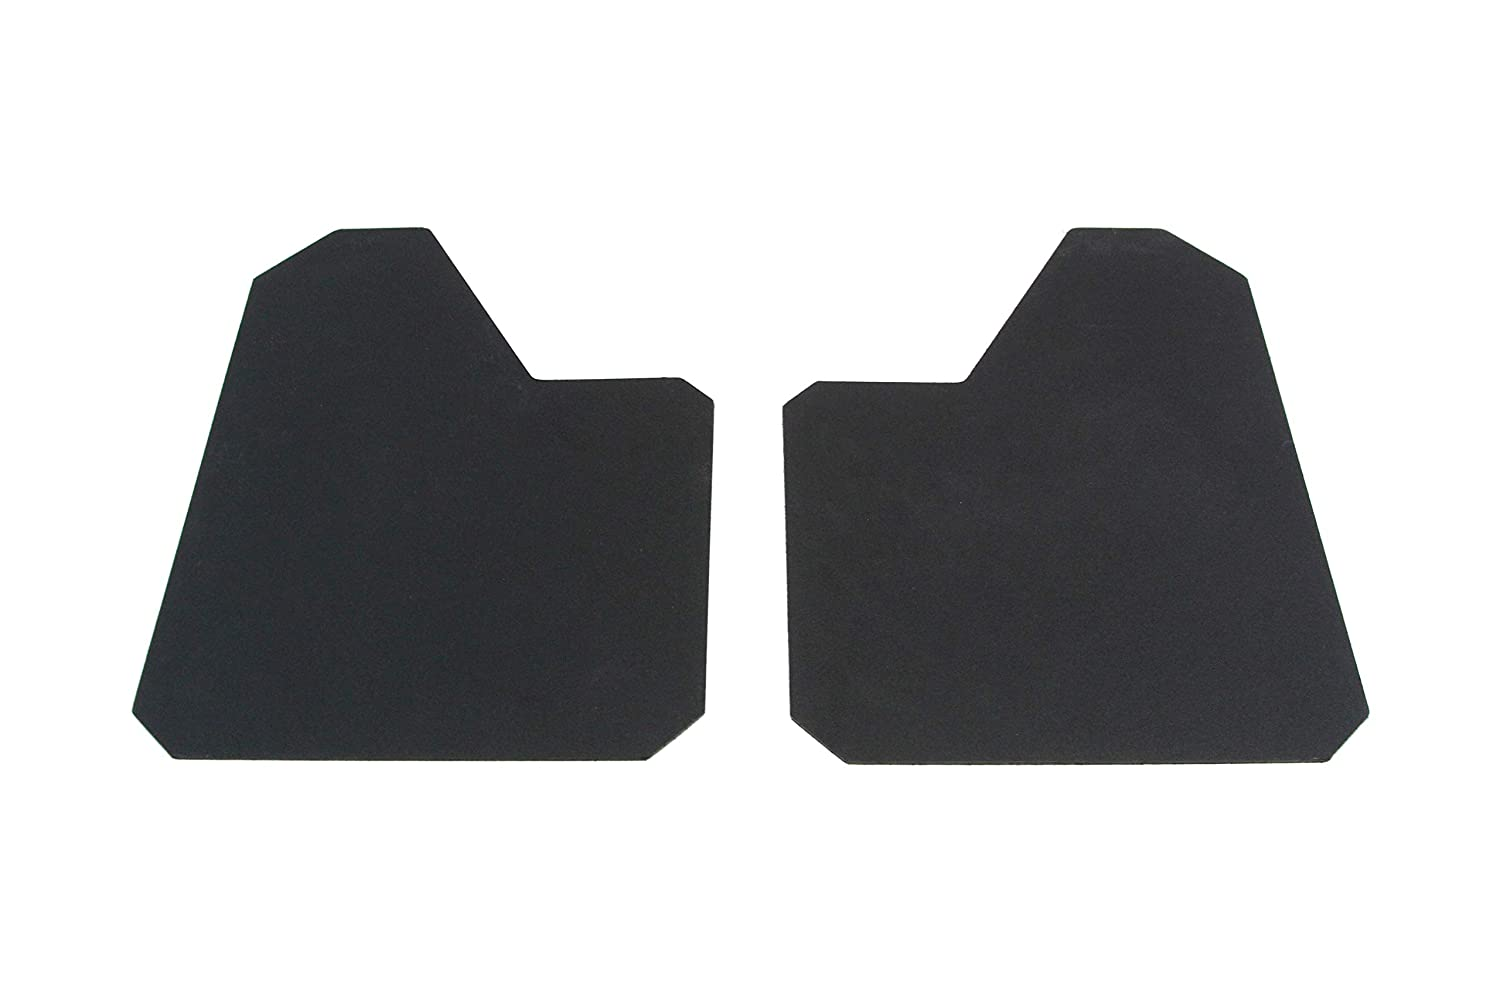 Red Hound Auto 4 Piece Racing Style Universal Splash Guards Standard Coverage Stone Guards fits Front and Rear Driver and Passenger Mud Flaps Black 4pc Full Set with Hardware 9 Inches x 12 Inches